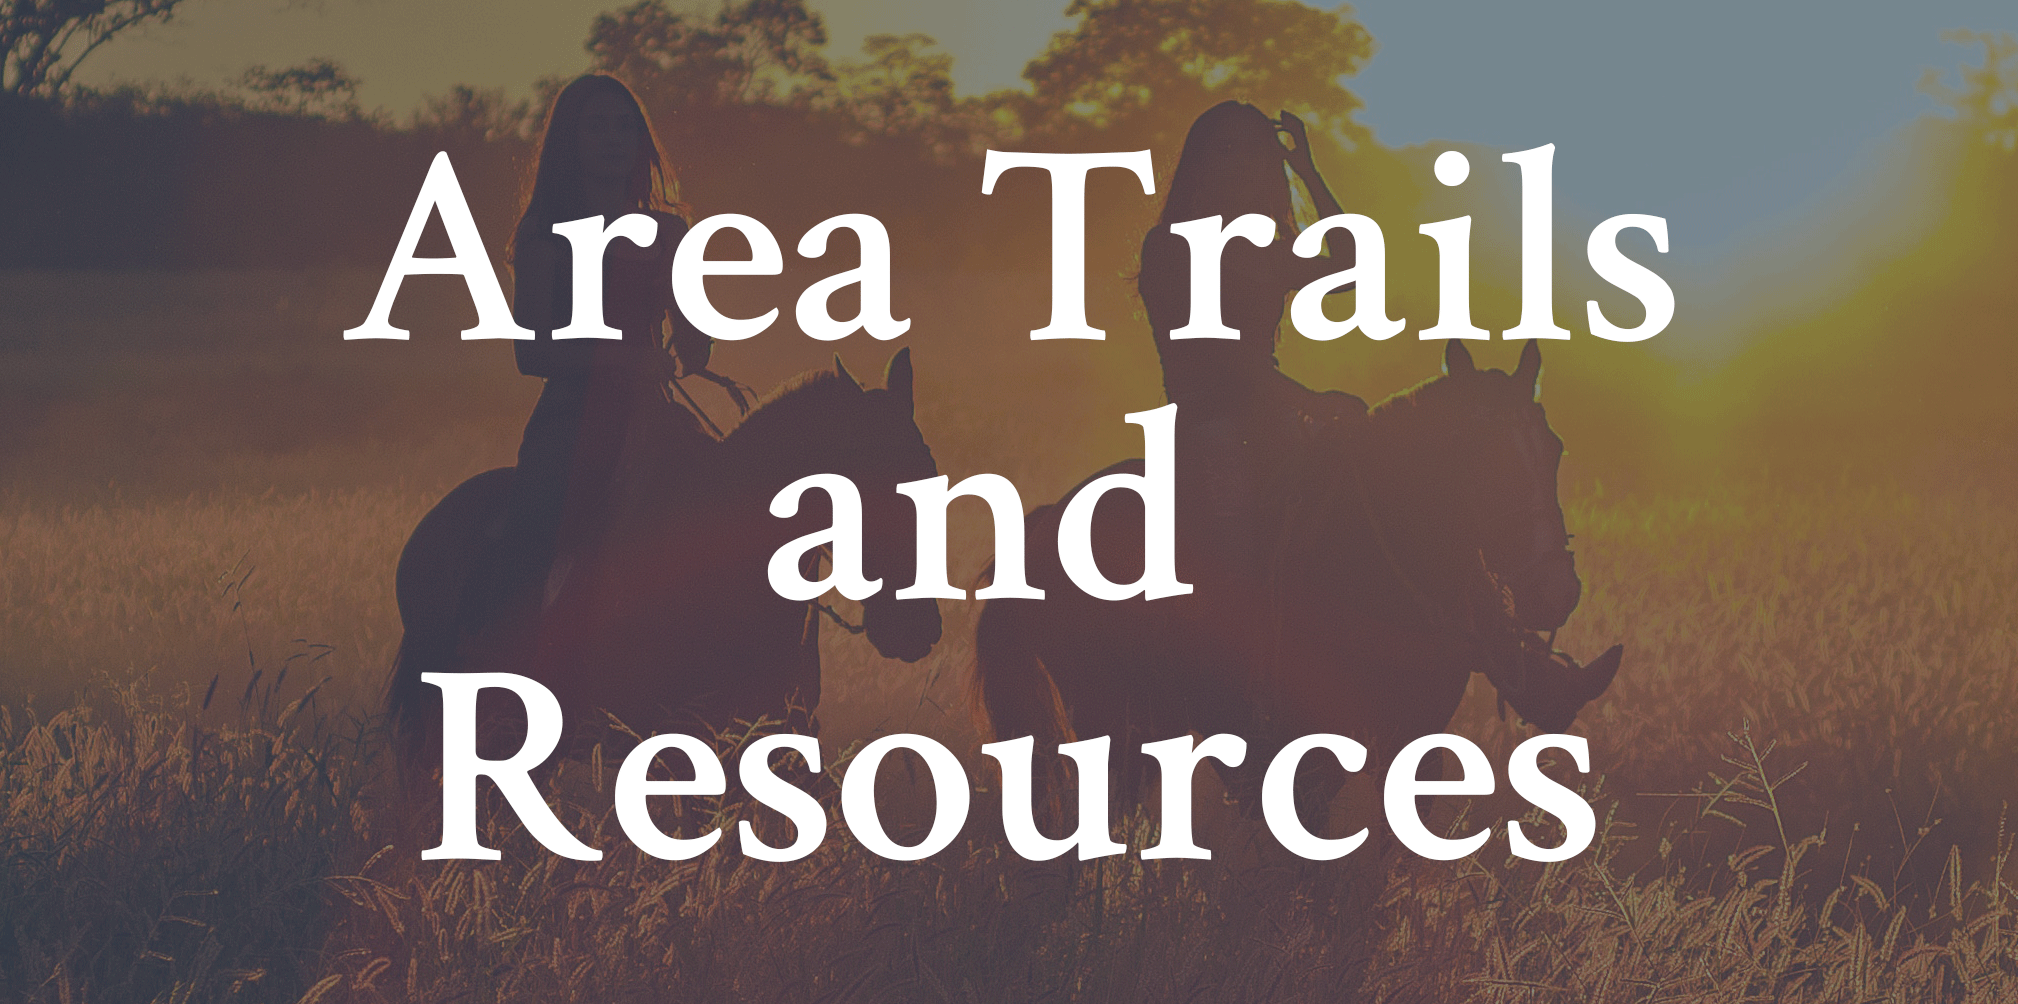 Click here to take a look at Ocala Area Trails and Resources.